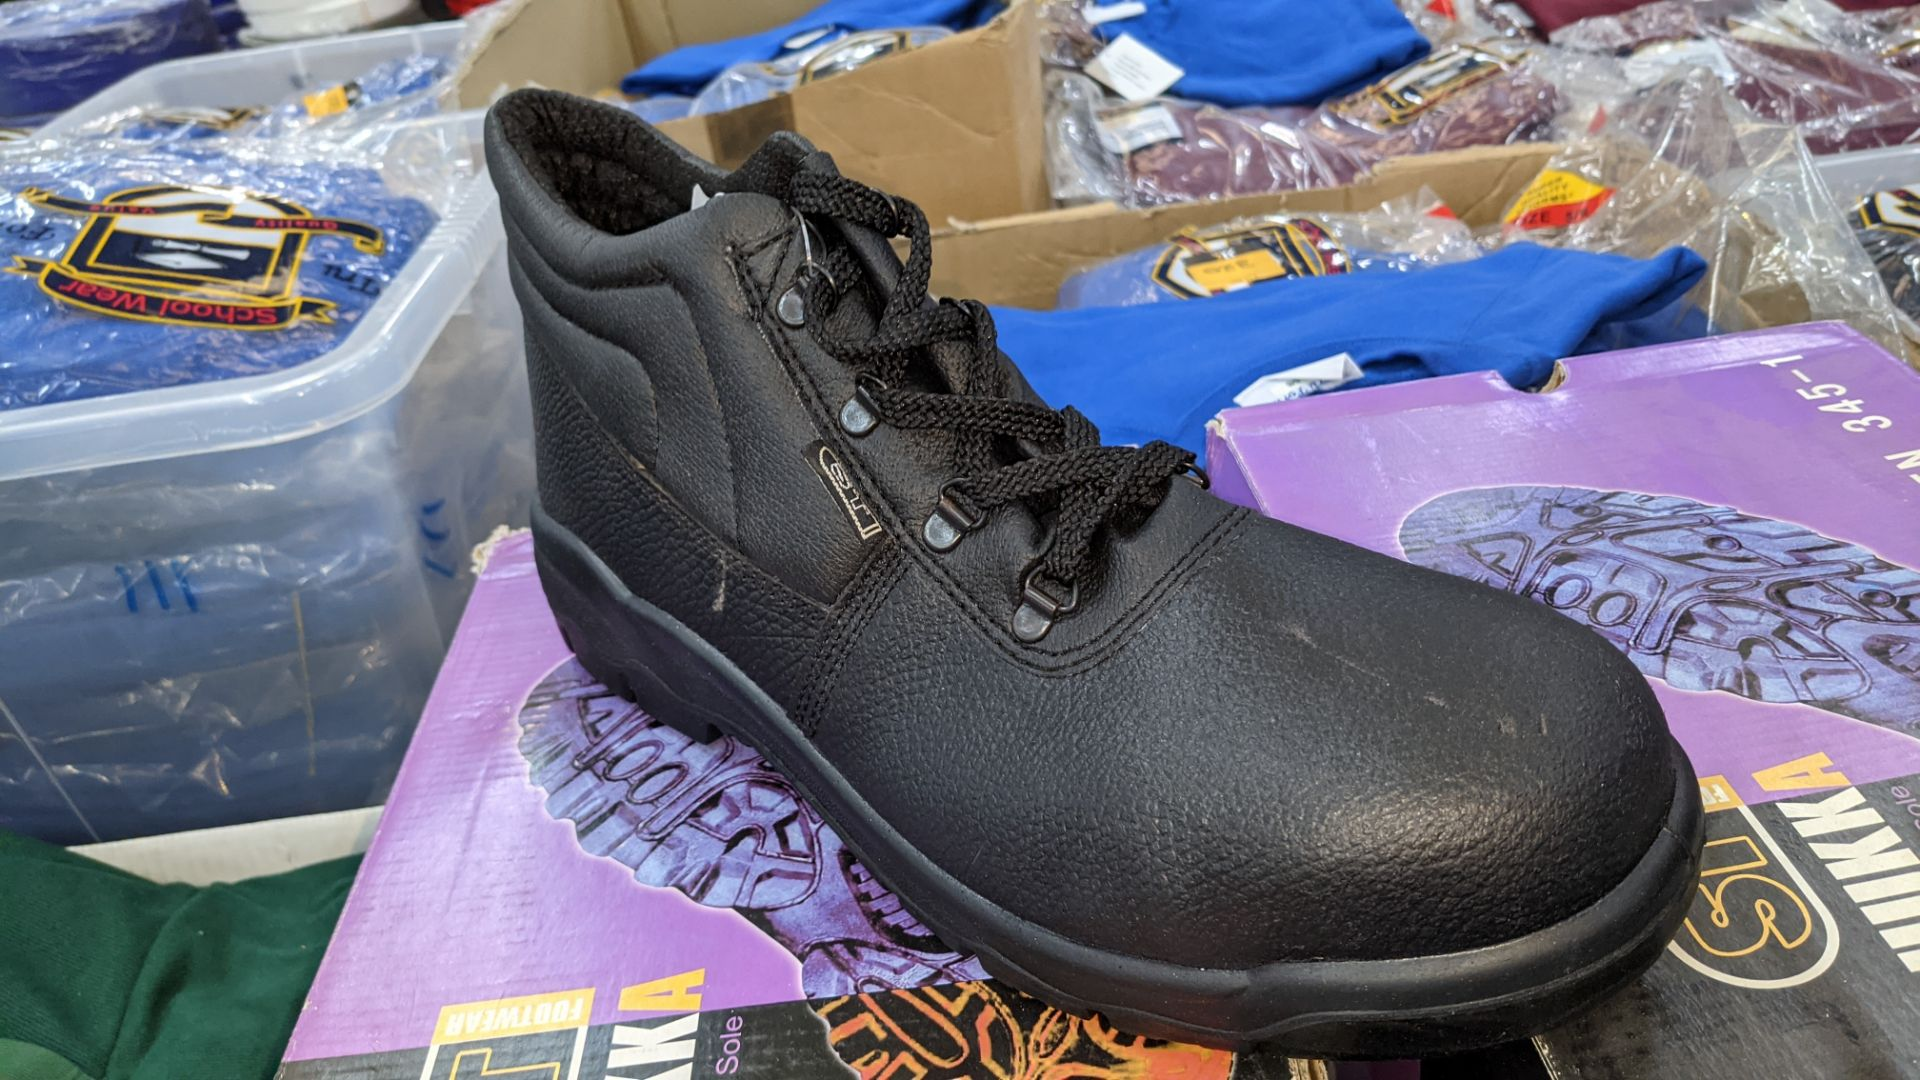 6 pairs of Chukka protective work boots - Image 3 of 6